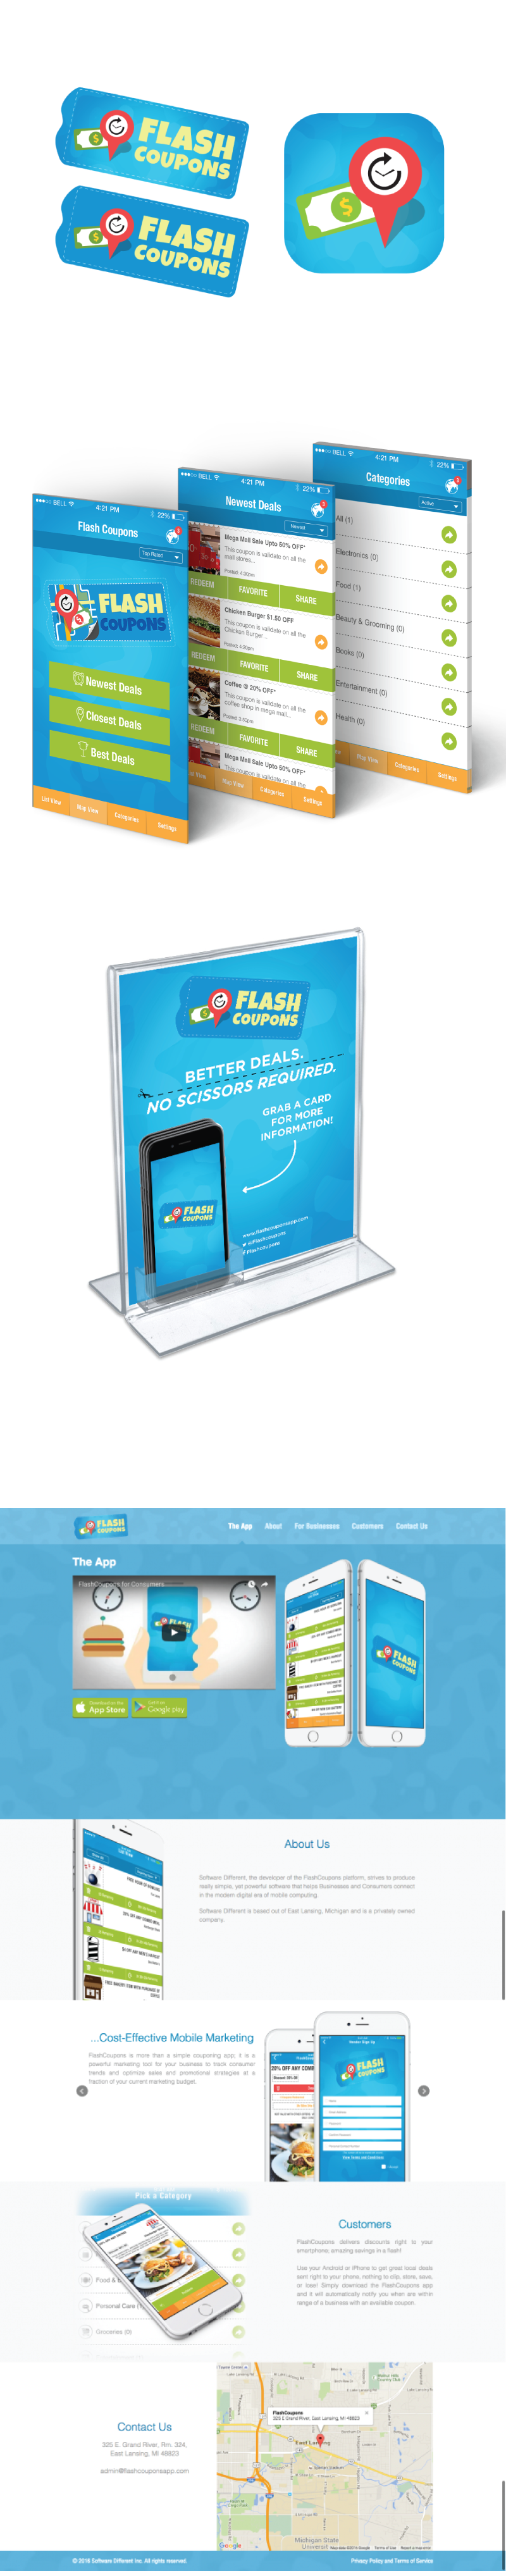 Check out the work we did for the new Flash Coupons #app!